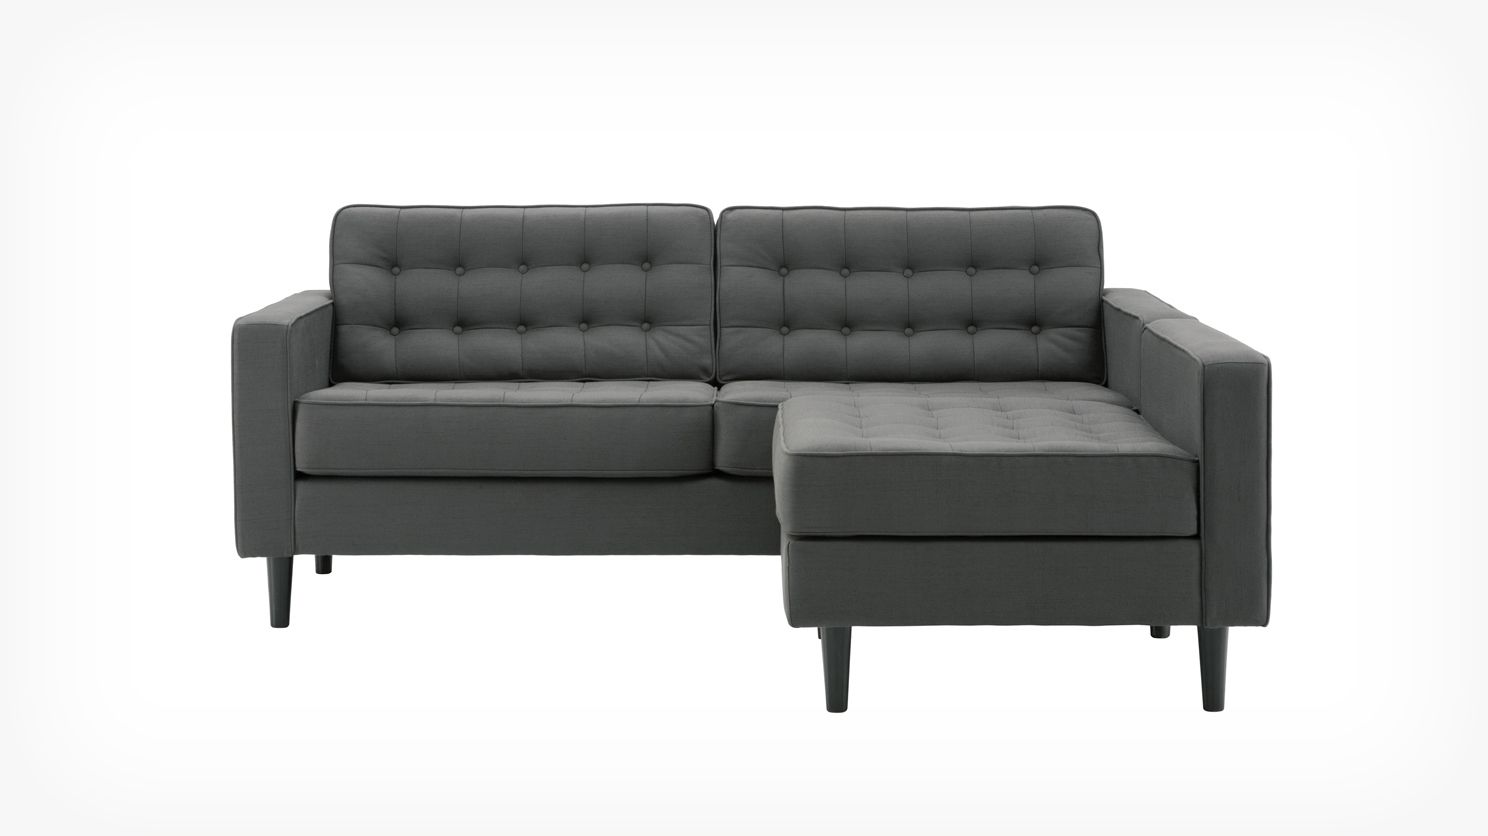 Resemblance of 2 Piece Sectional Sofa with Chaise Design : 2 piece chaise sectional - Sectionals, Sofas & Couches